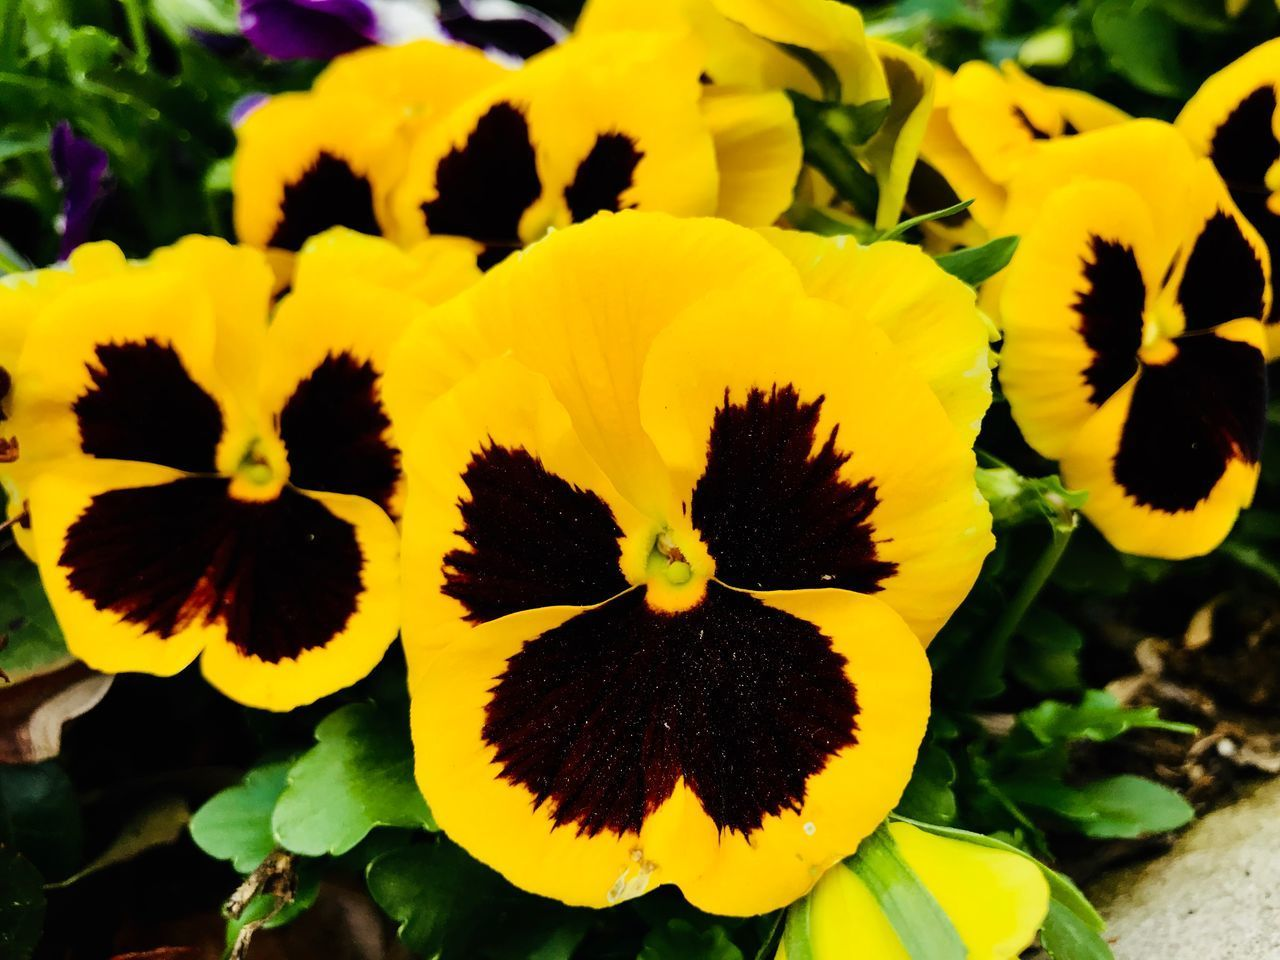 yellow, flower, flowering plant, flower head, beauty in nature, plant, fragility, petal, inflorescence, vulnerability, close-up, growth, freshness, nature, focus on foreground, no people, day, pollen, pansy, outdoors, softness